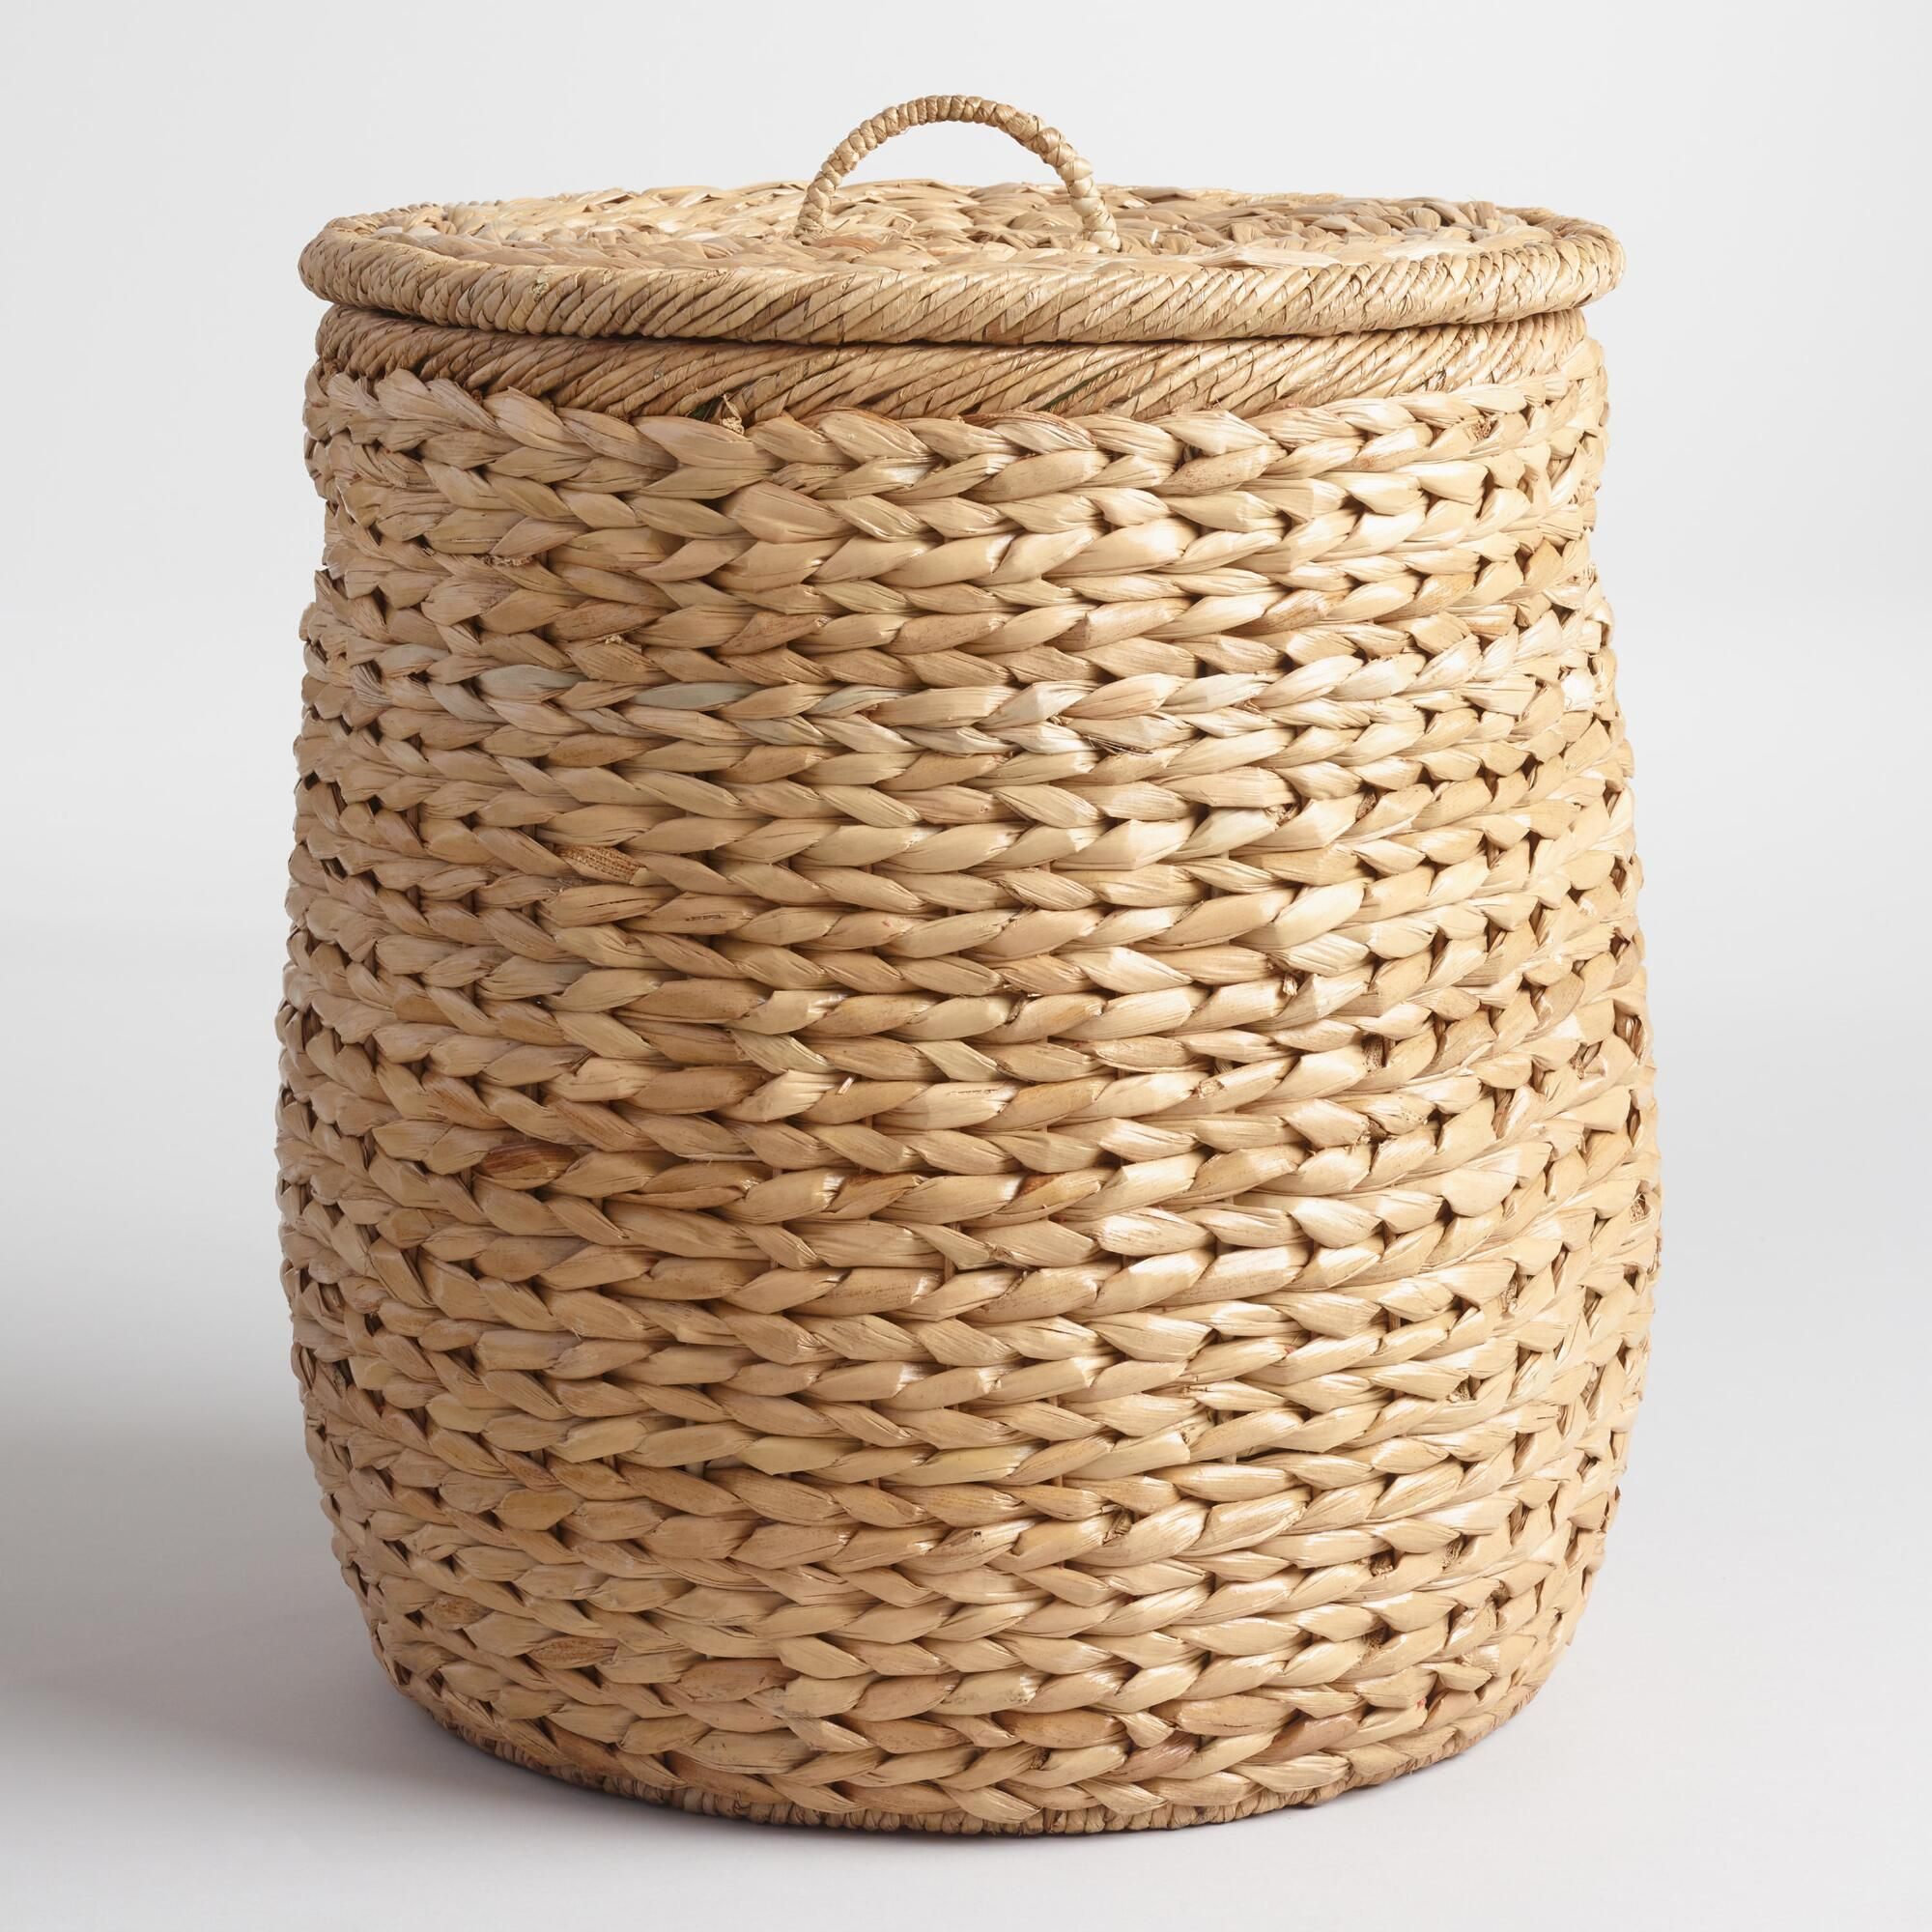 Natural Seagrass Leona Hamper Basket Boho Dorm Room Stylish